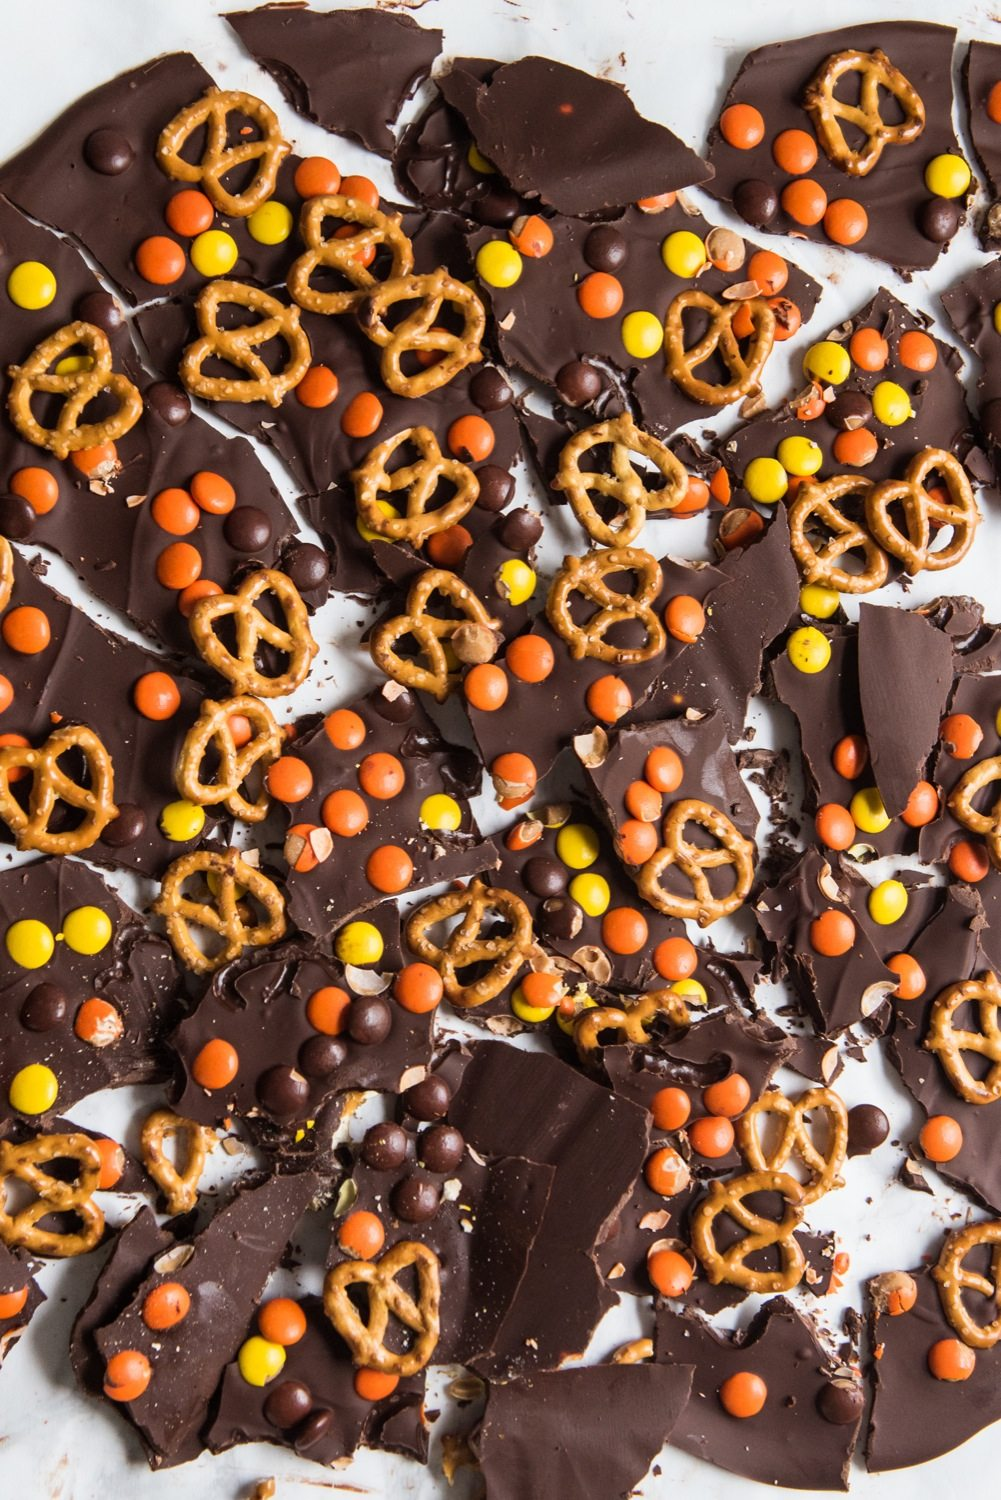 Halloween Candy Bark Recipe   Halloween party ideas, Halloween recipes and entertaining tips from @cydconverse